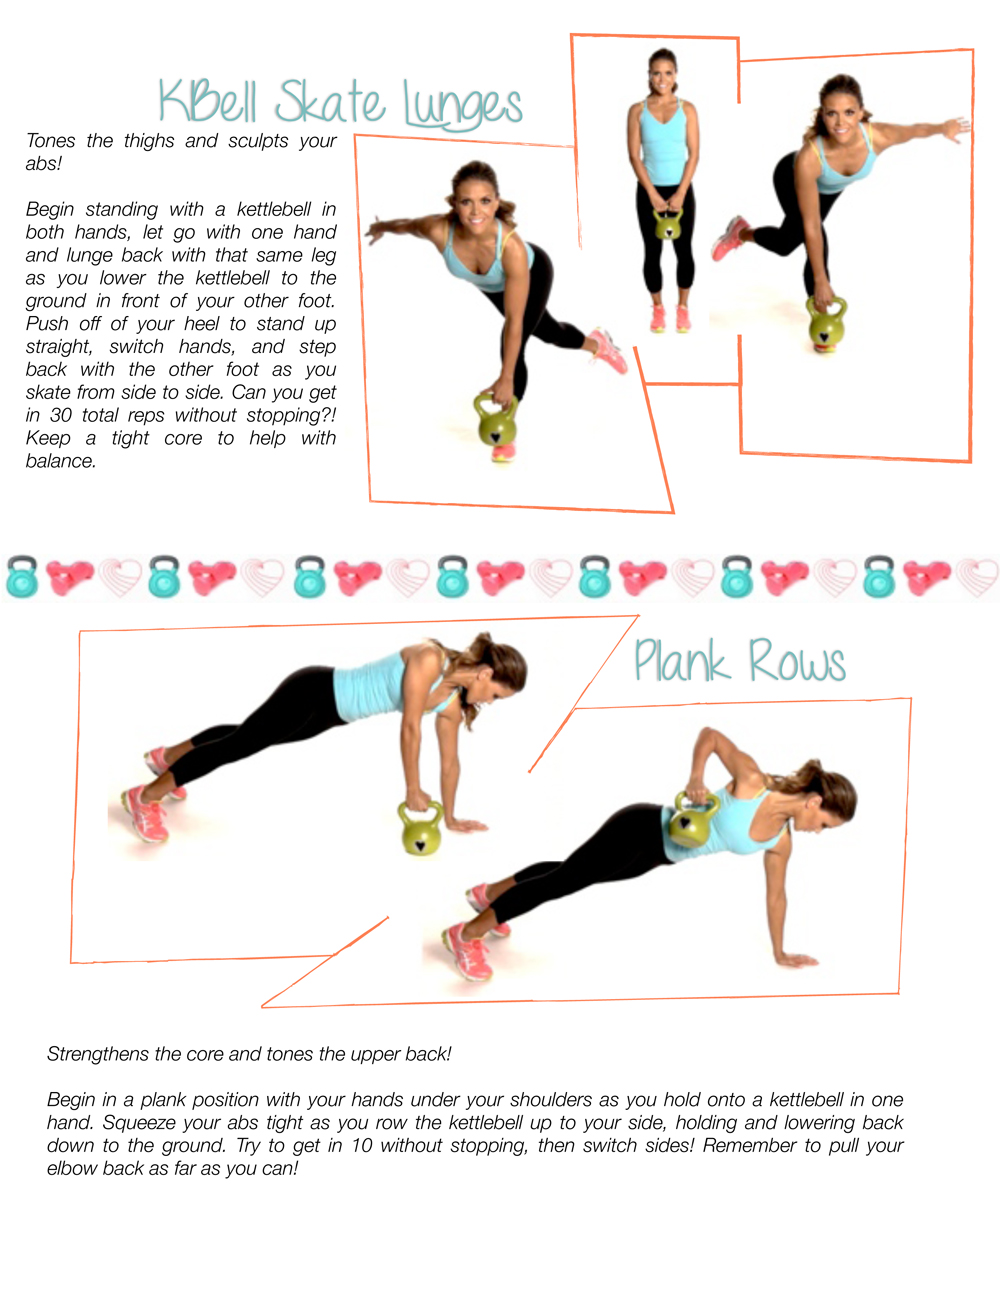 Printable Kettlebell Worktou Lunges Plank Rows For Abs And Upper Back